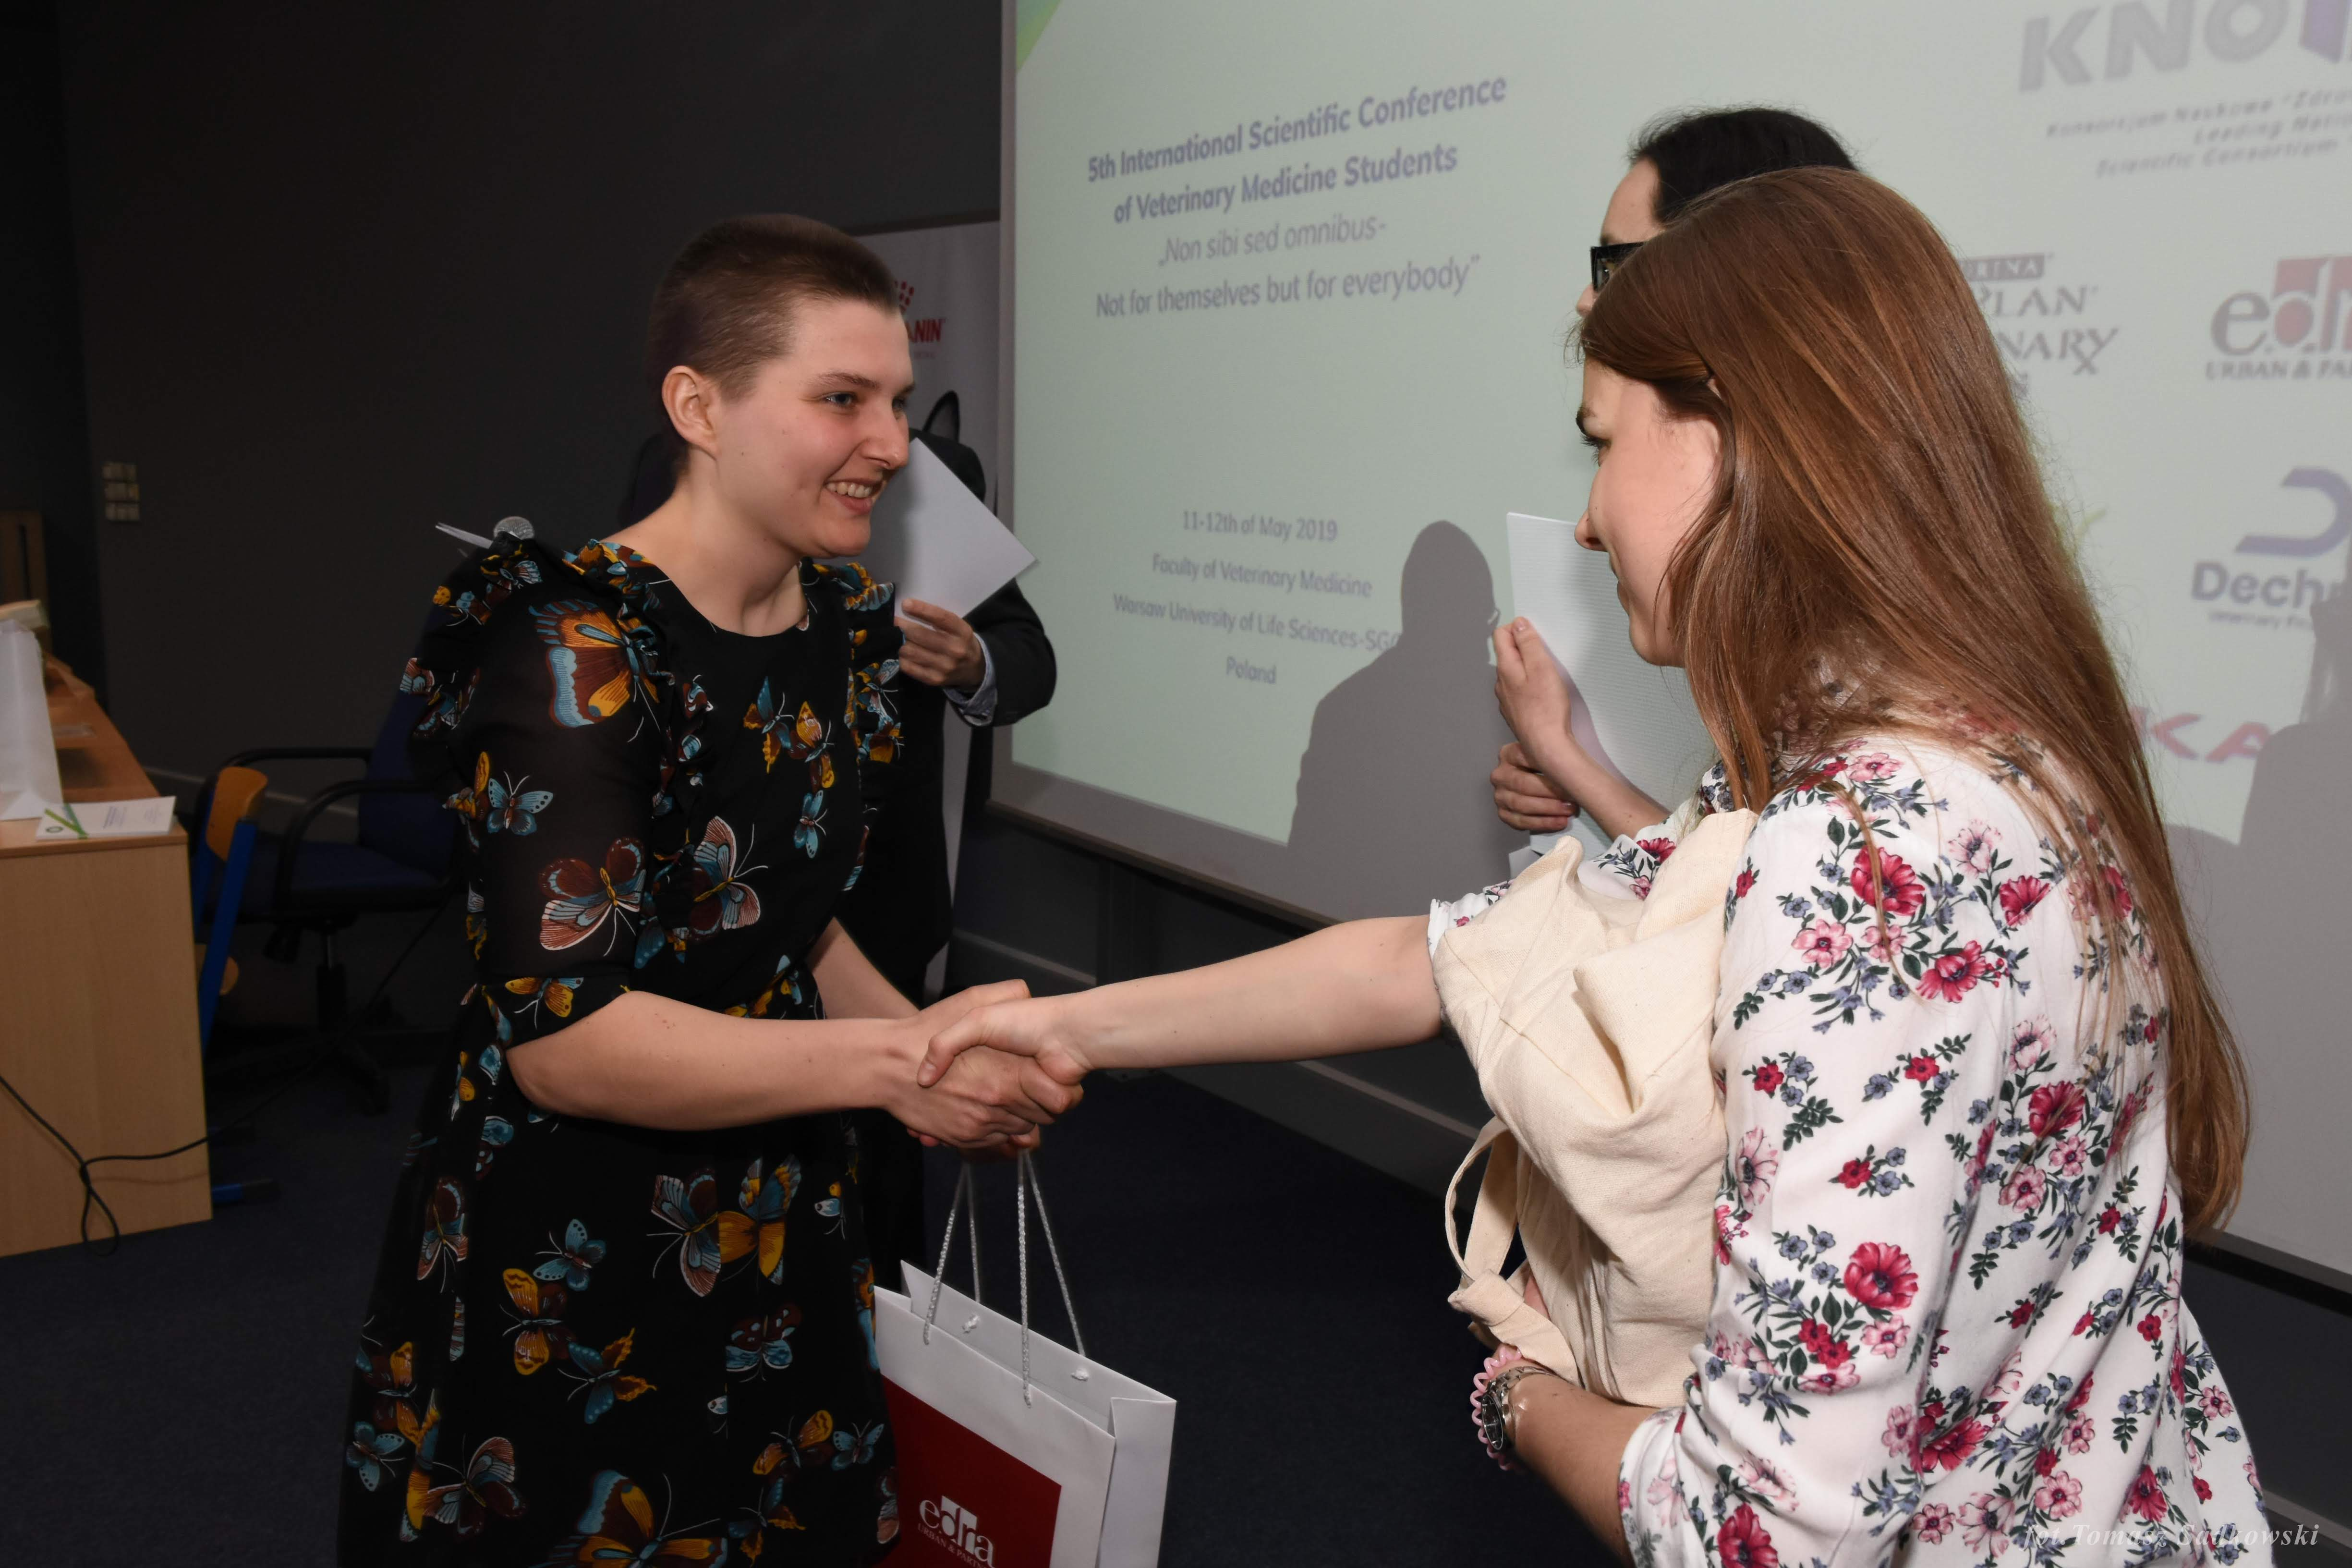 Dominika Sobucka distinguished for 'The utilization of blood immunoglobulin and acute phase proteins measurement in the monitoring of health of beef calves in extensive livestock production'